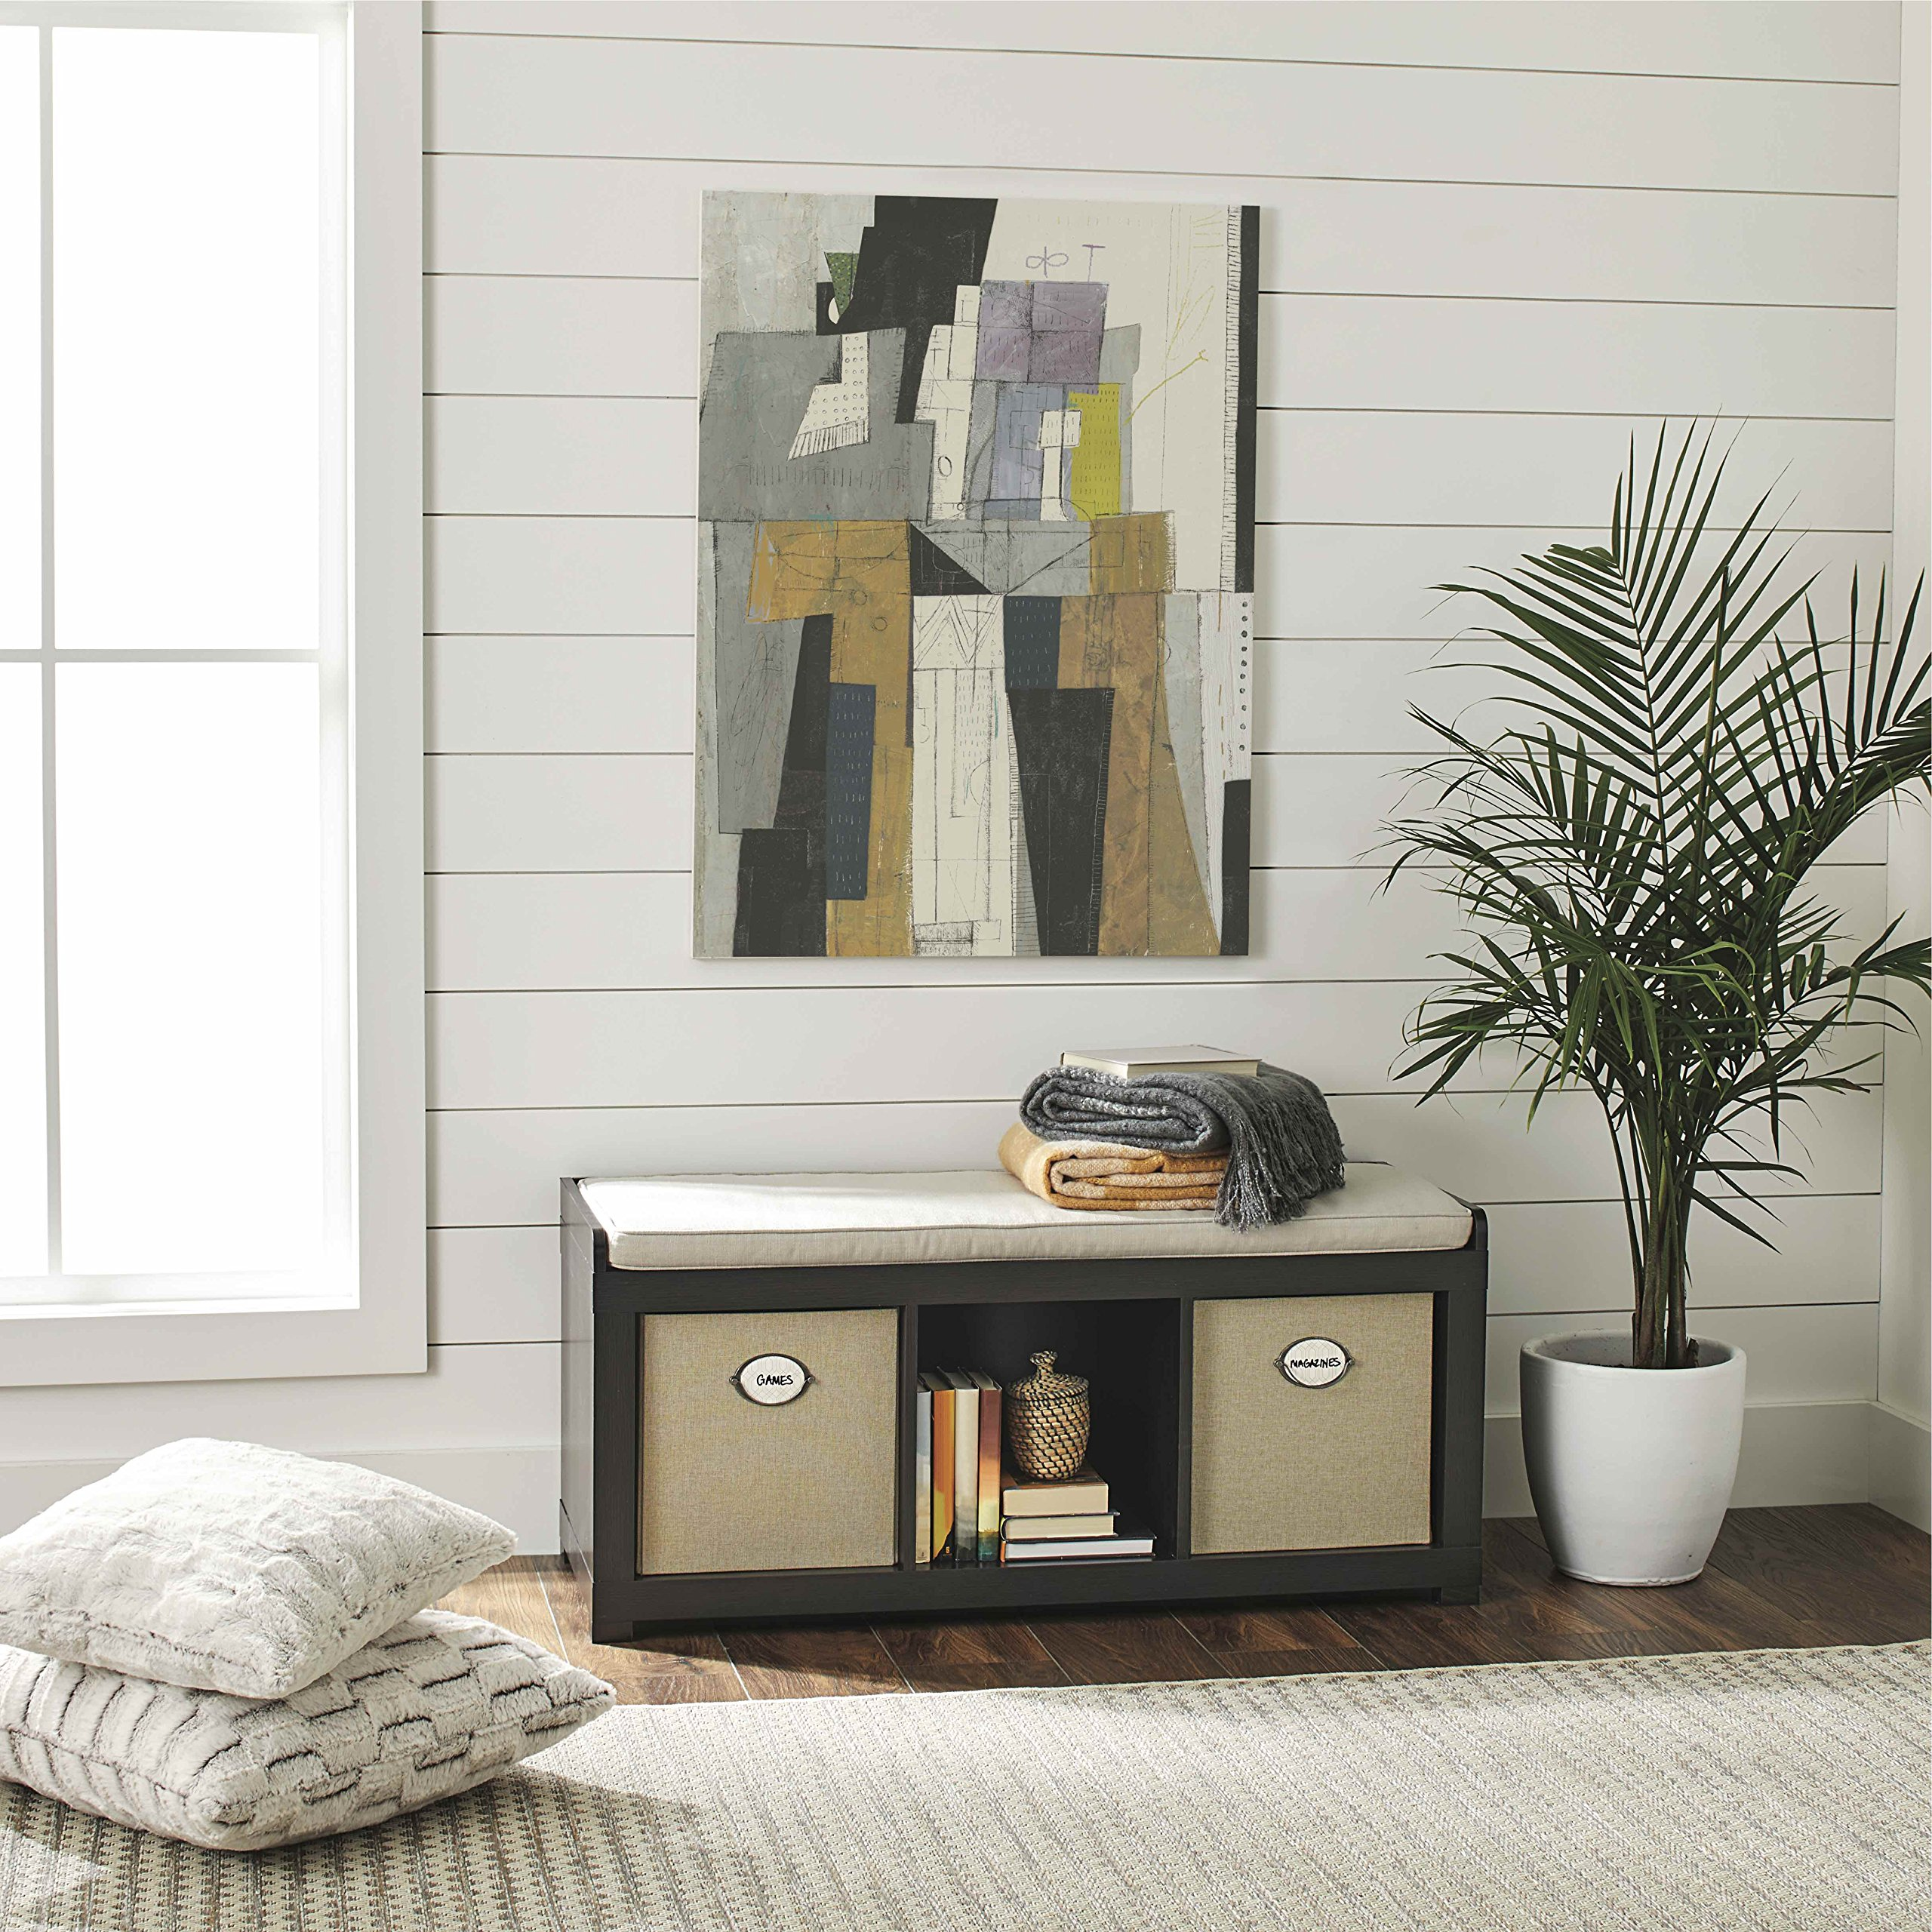 The Better Homes and Gardens 3 Cube Storage Bench (Espresso)